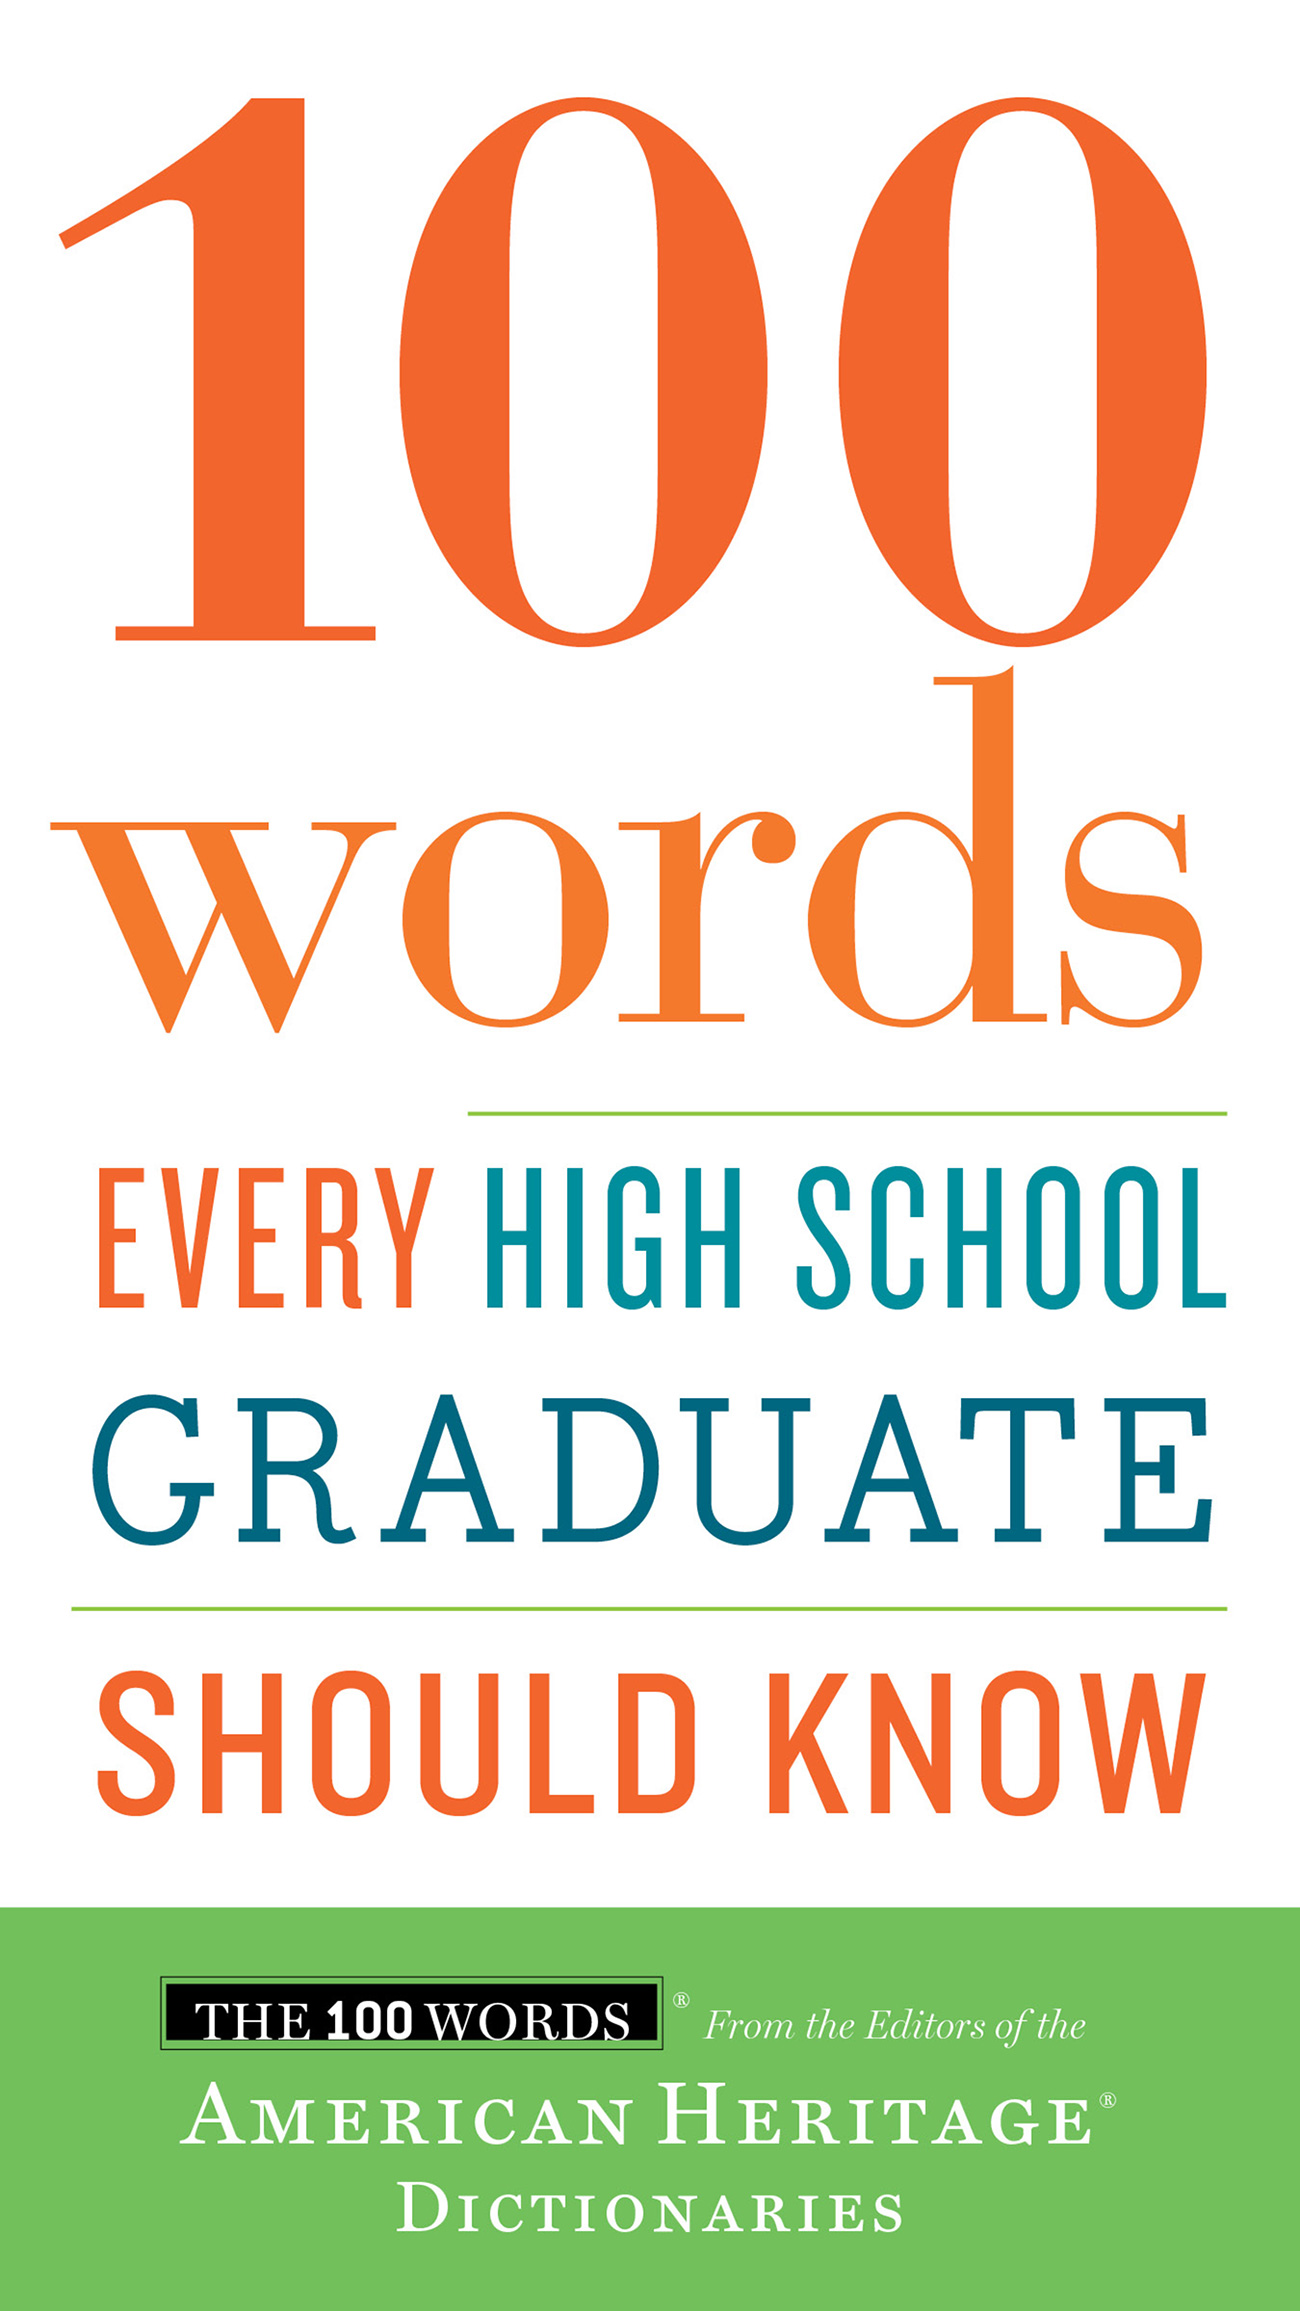 100 Words Every High School Graduate Should Know-9780544789890